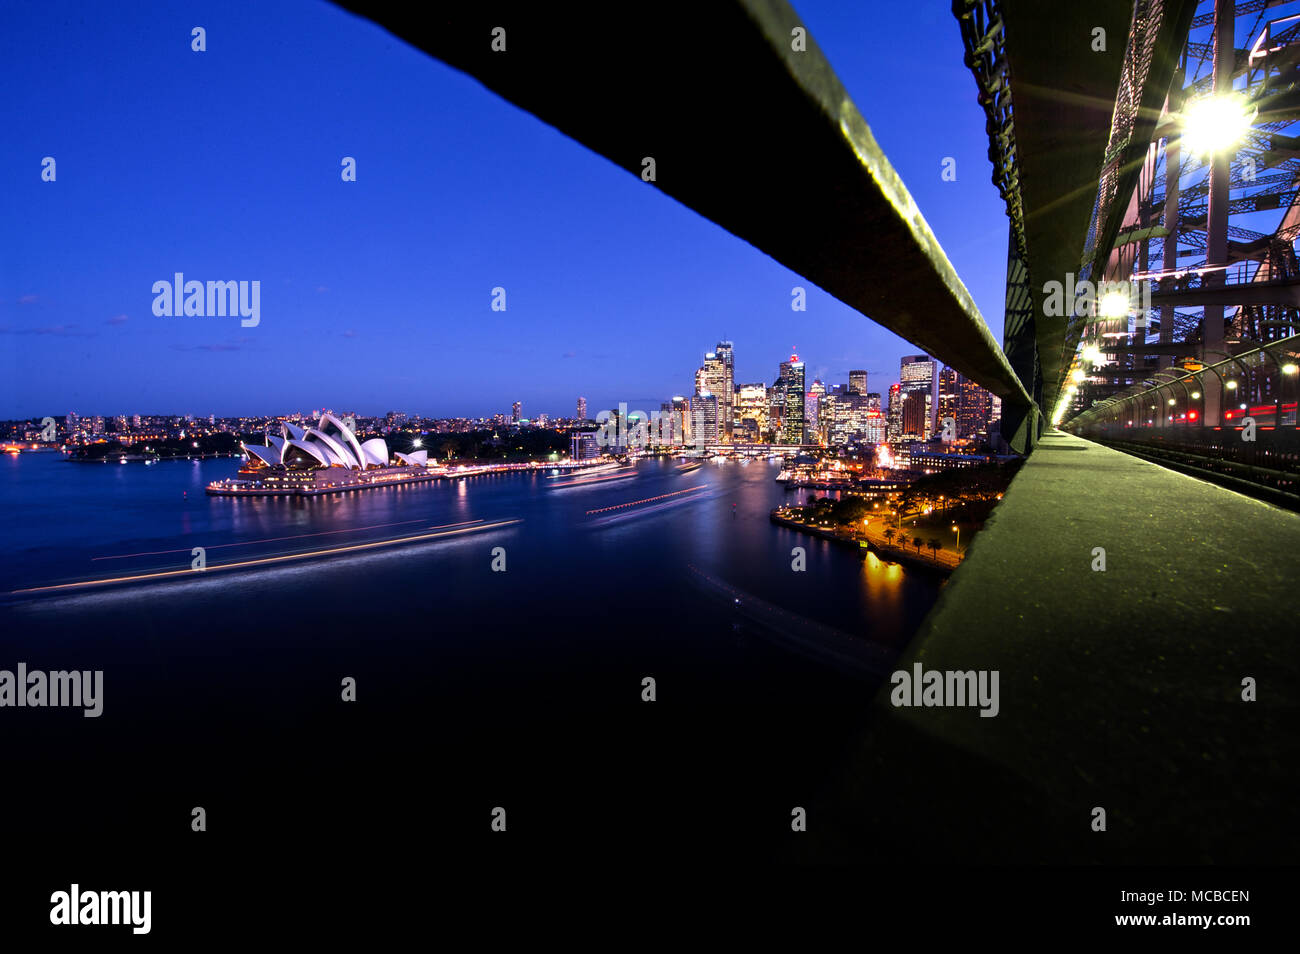 Australia: Sydney landscape from the Sydney Harbour bridge looking at downtown and at the Opera House Photo: Alessandro Bosio/Alamy Stock Photo